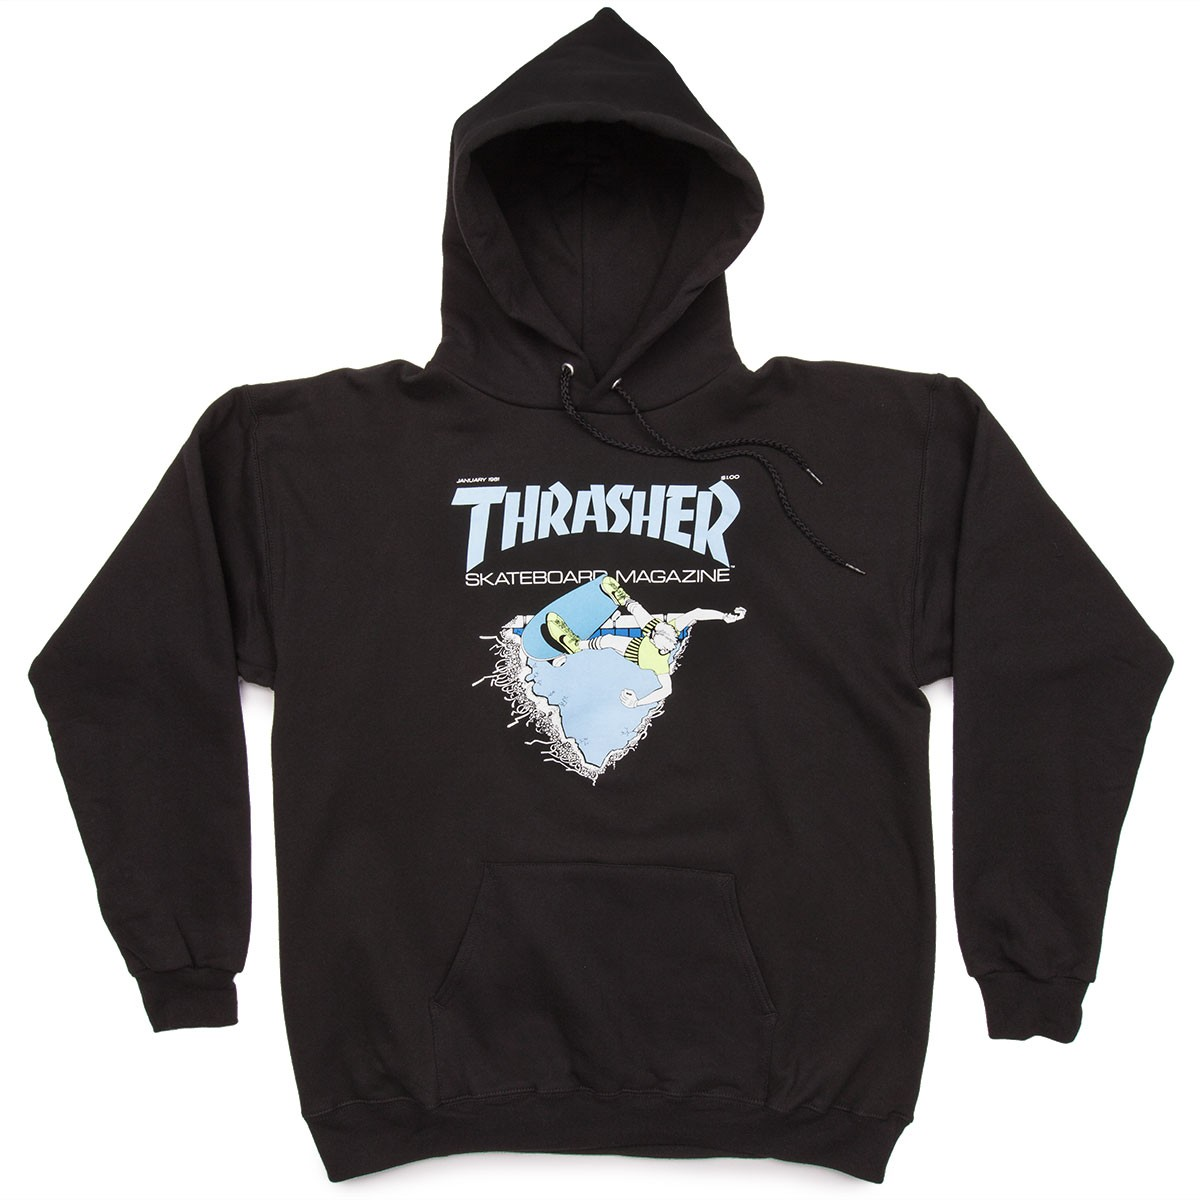 Home gt apparel gt sweatshirts and hoodies gt thrasher gt thrasher first